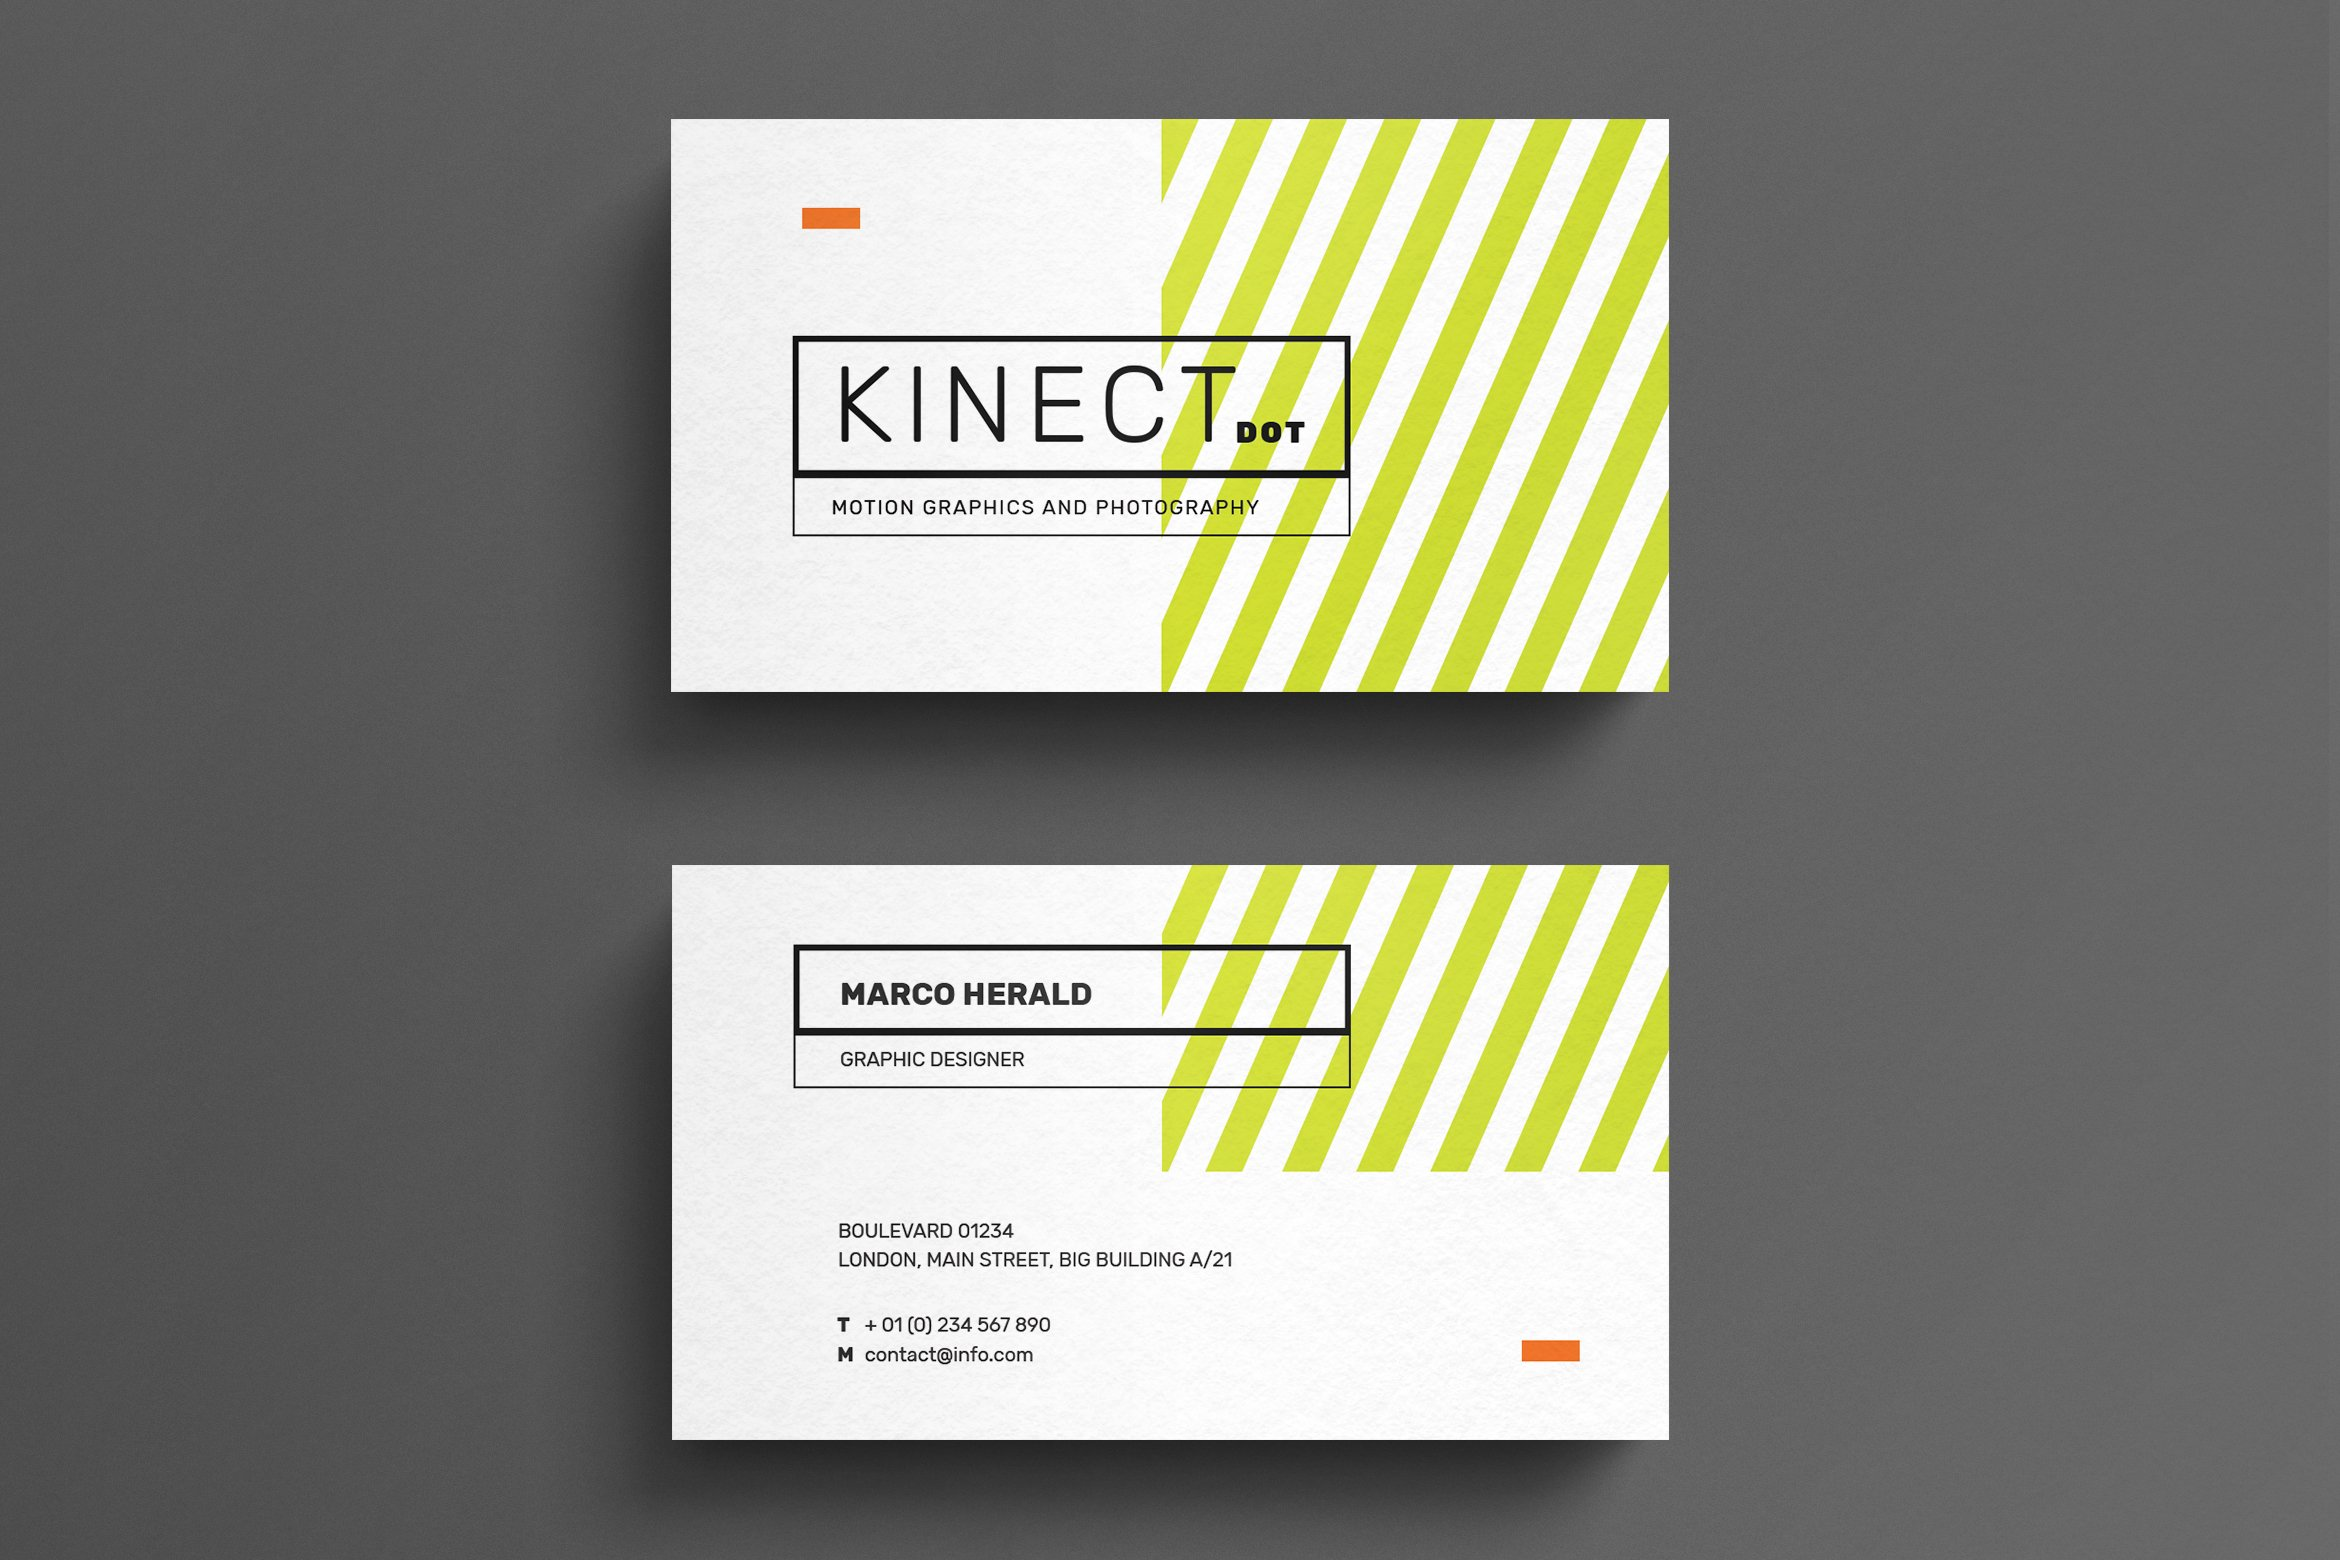 Minimal Business Card Template ~ Business Card Templates ~ Creative ...